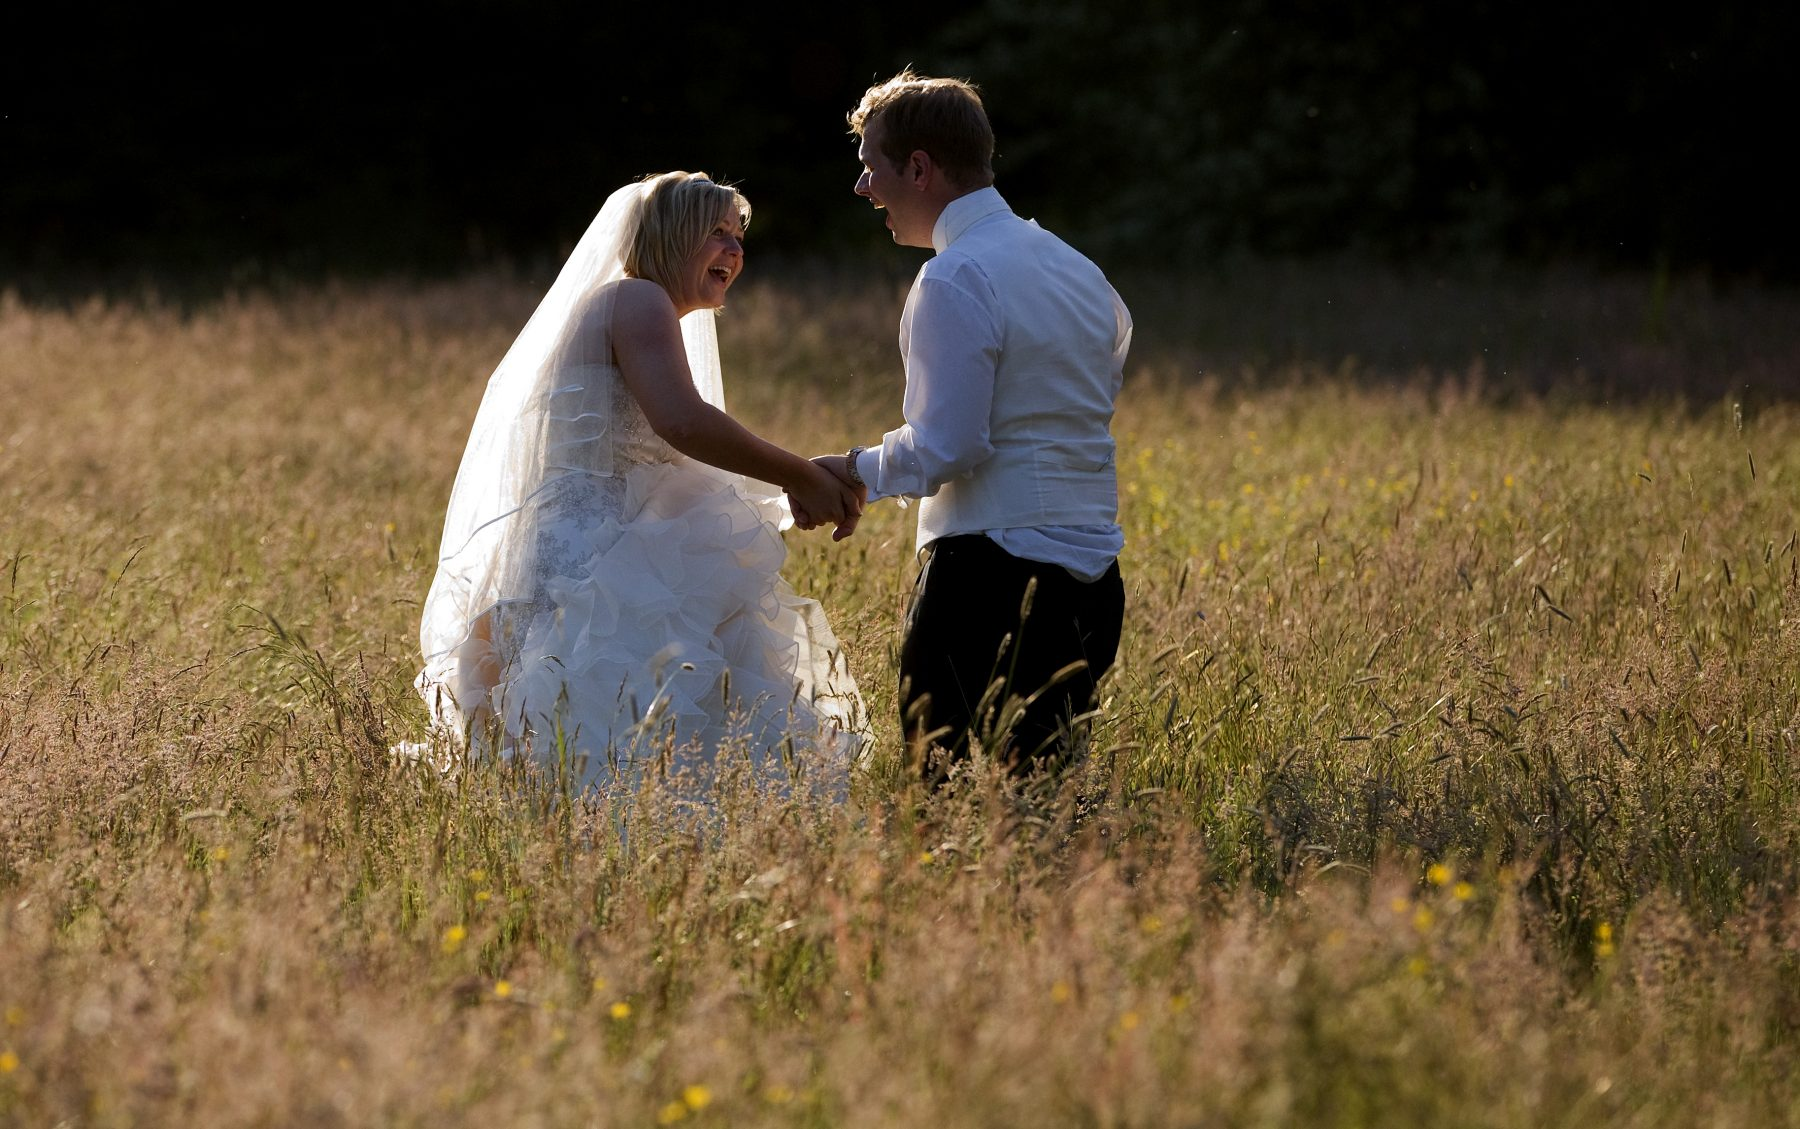 A bride and groom laugh during an evening sunset walk in the long grass after their wedding at Iscoyd Park in Shropshire.